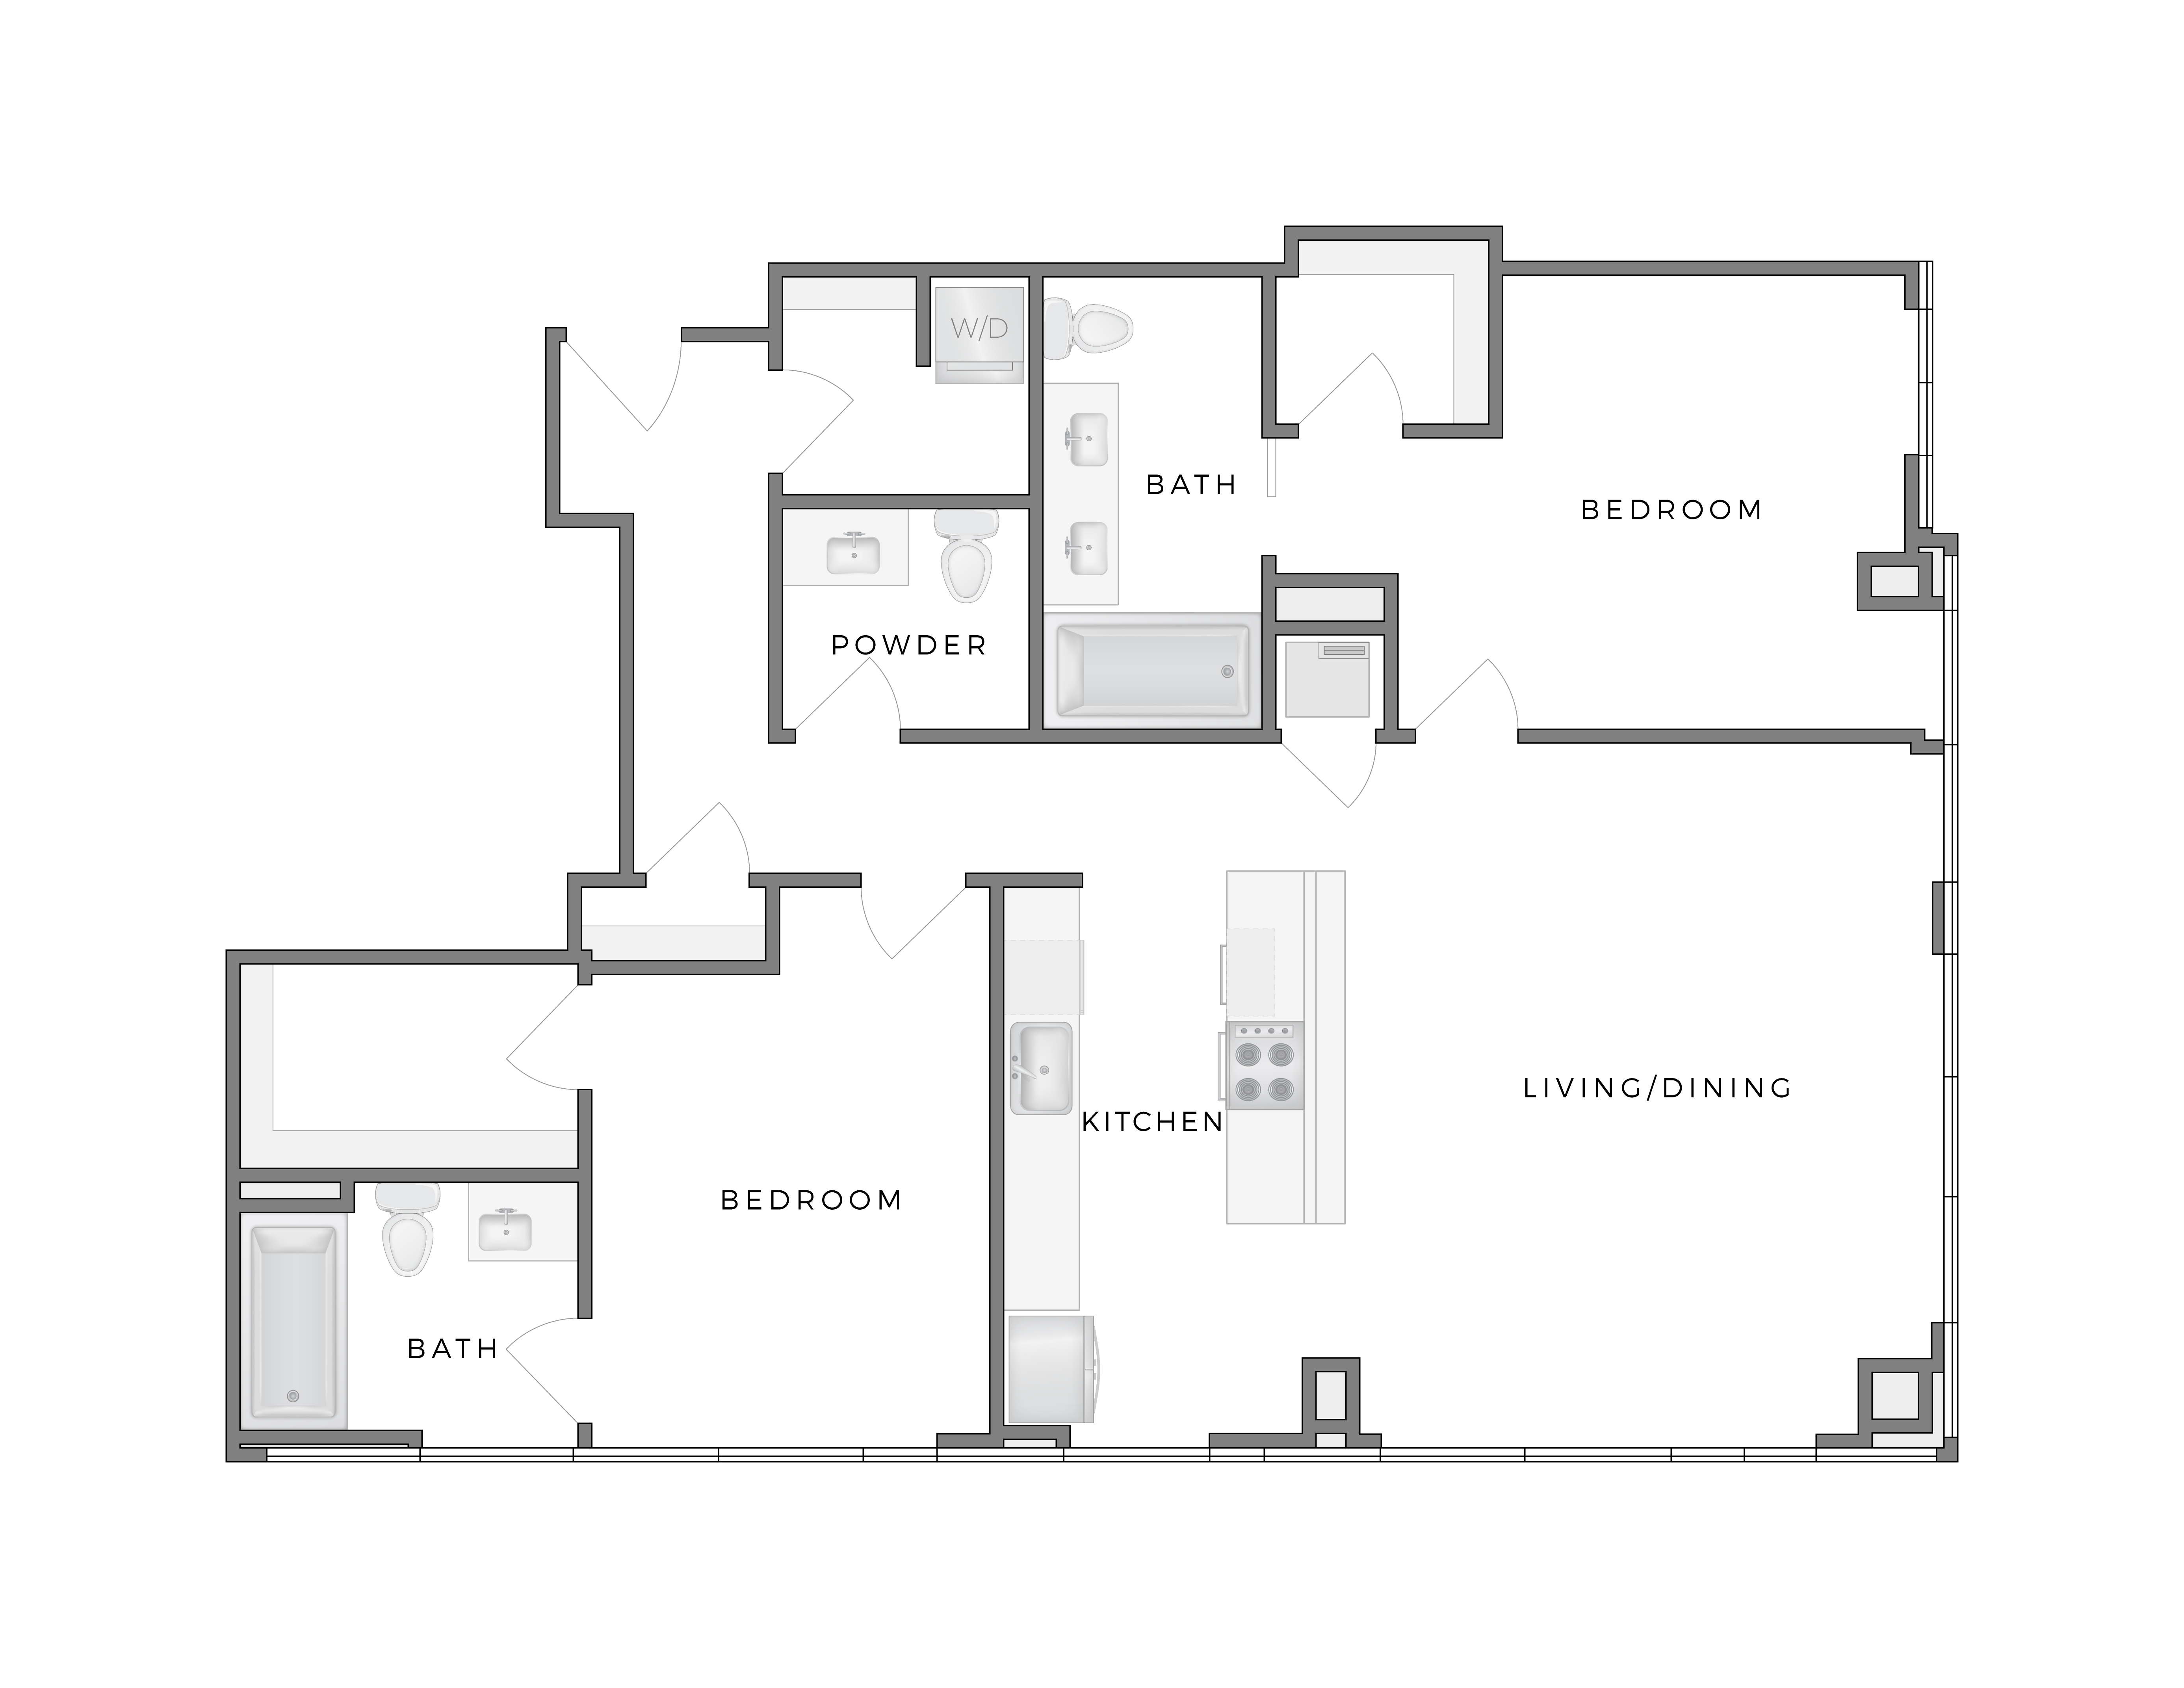 Atelier Calder 1 apartment floorplan diagram with two bedrooms, two and half bathrooms, kitchen, and living dining area